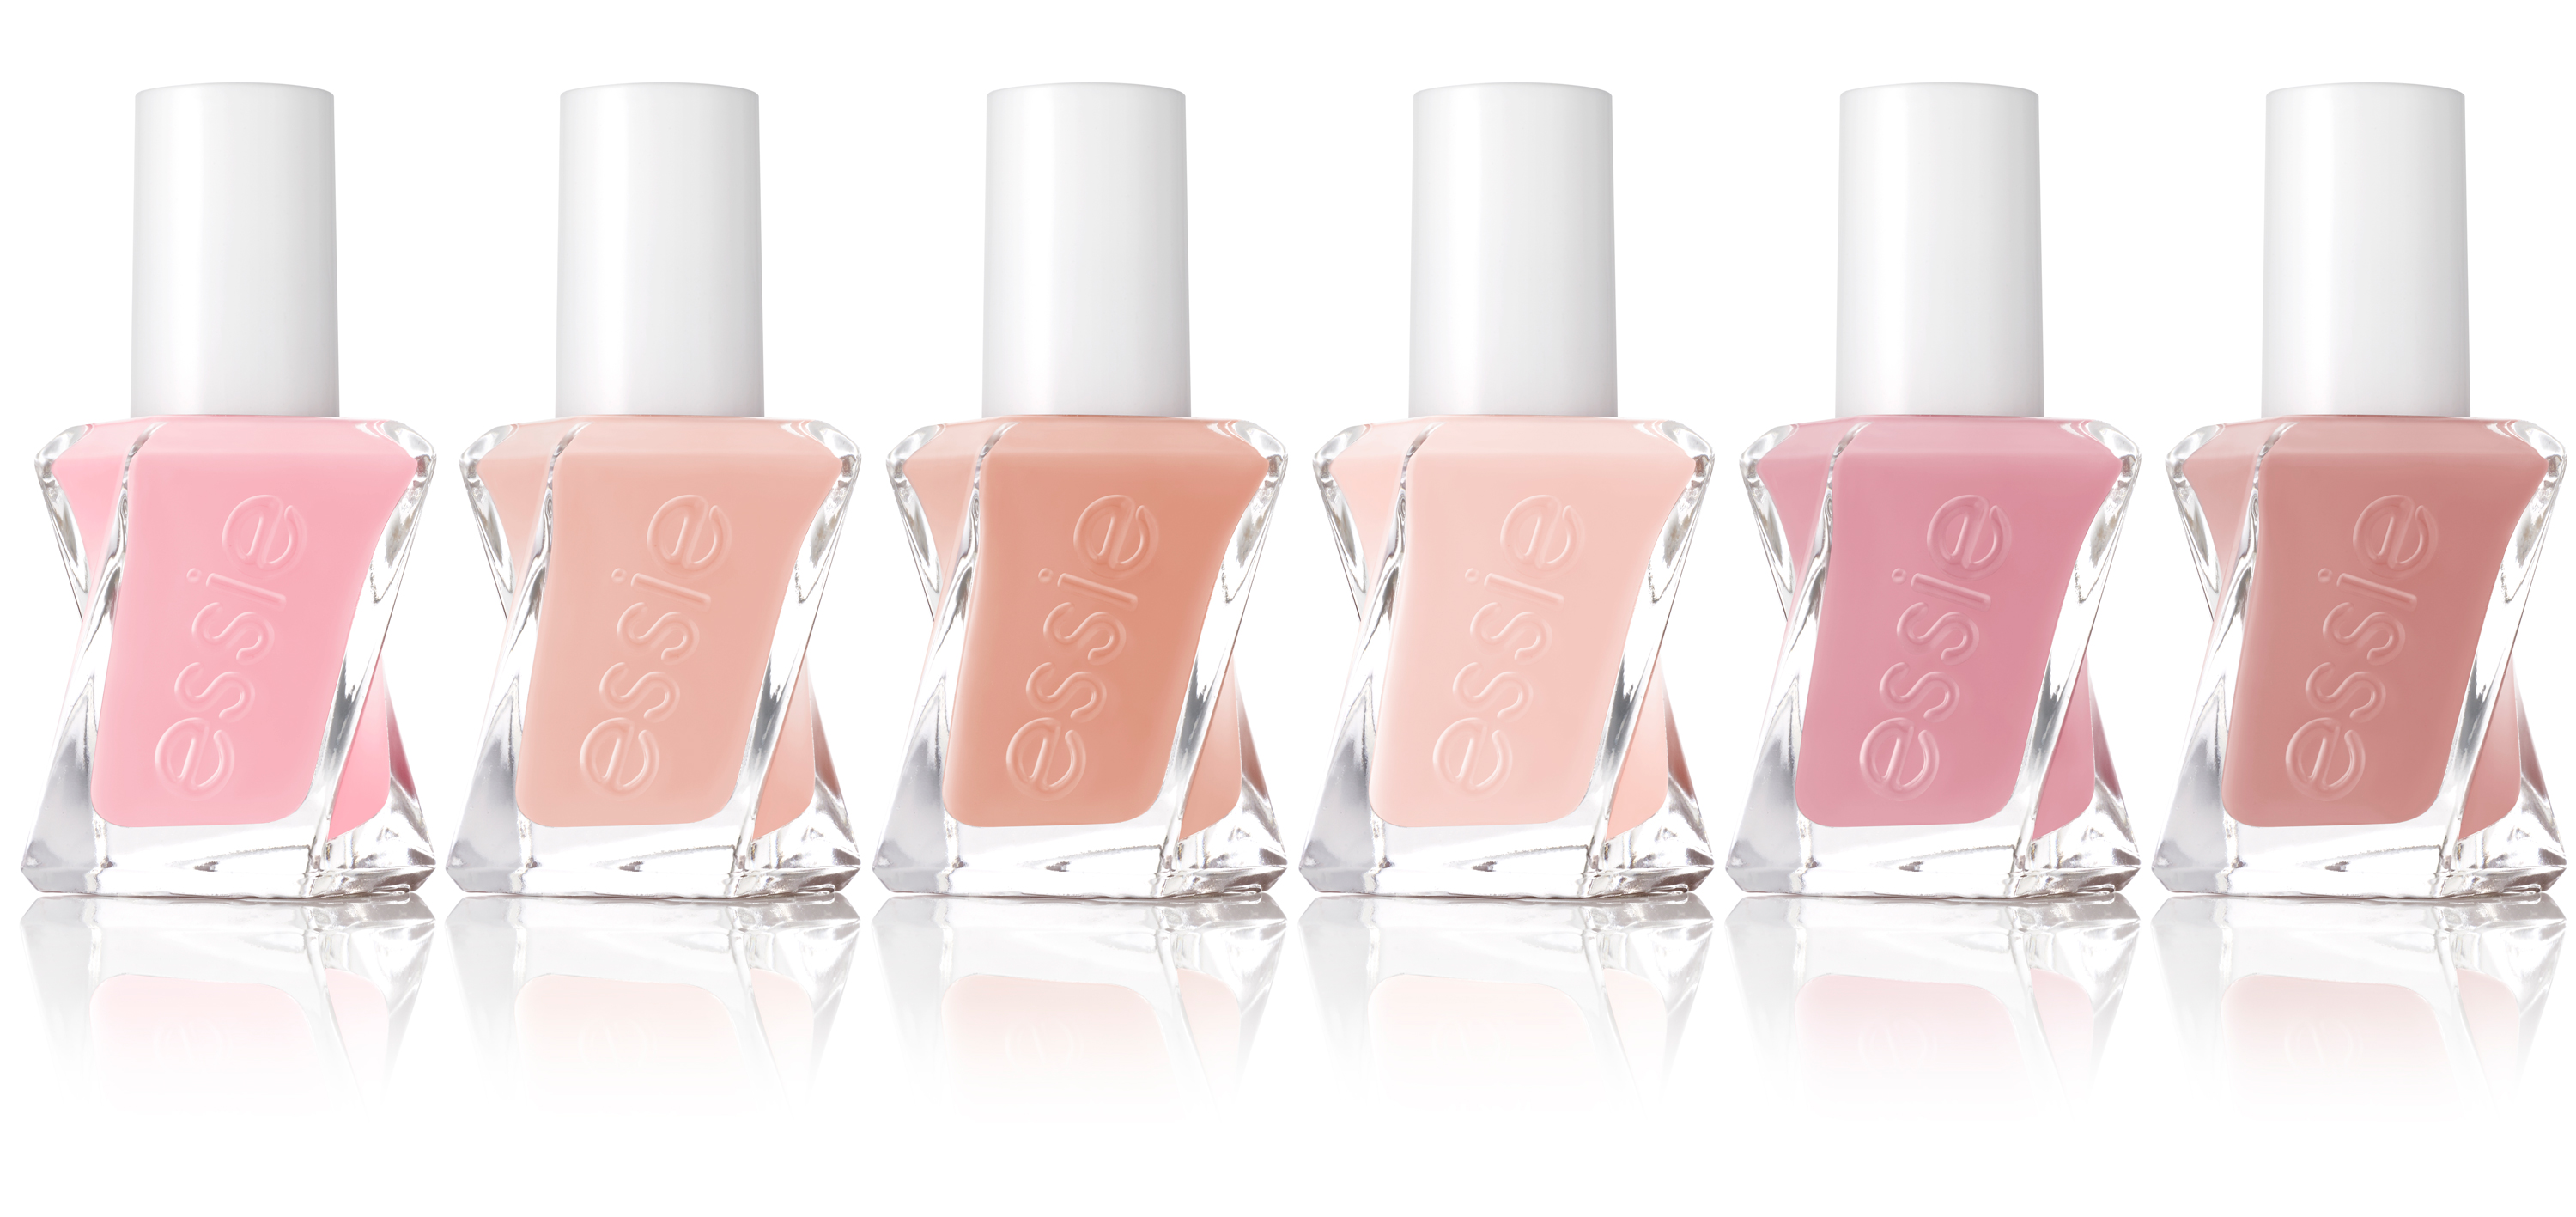 Introducing the Latest Innovation from Essie: The Gel Couture Nail ...